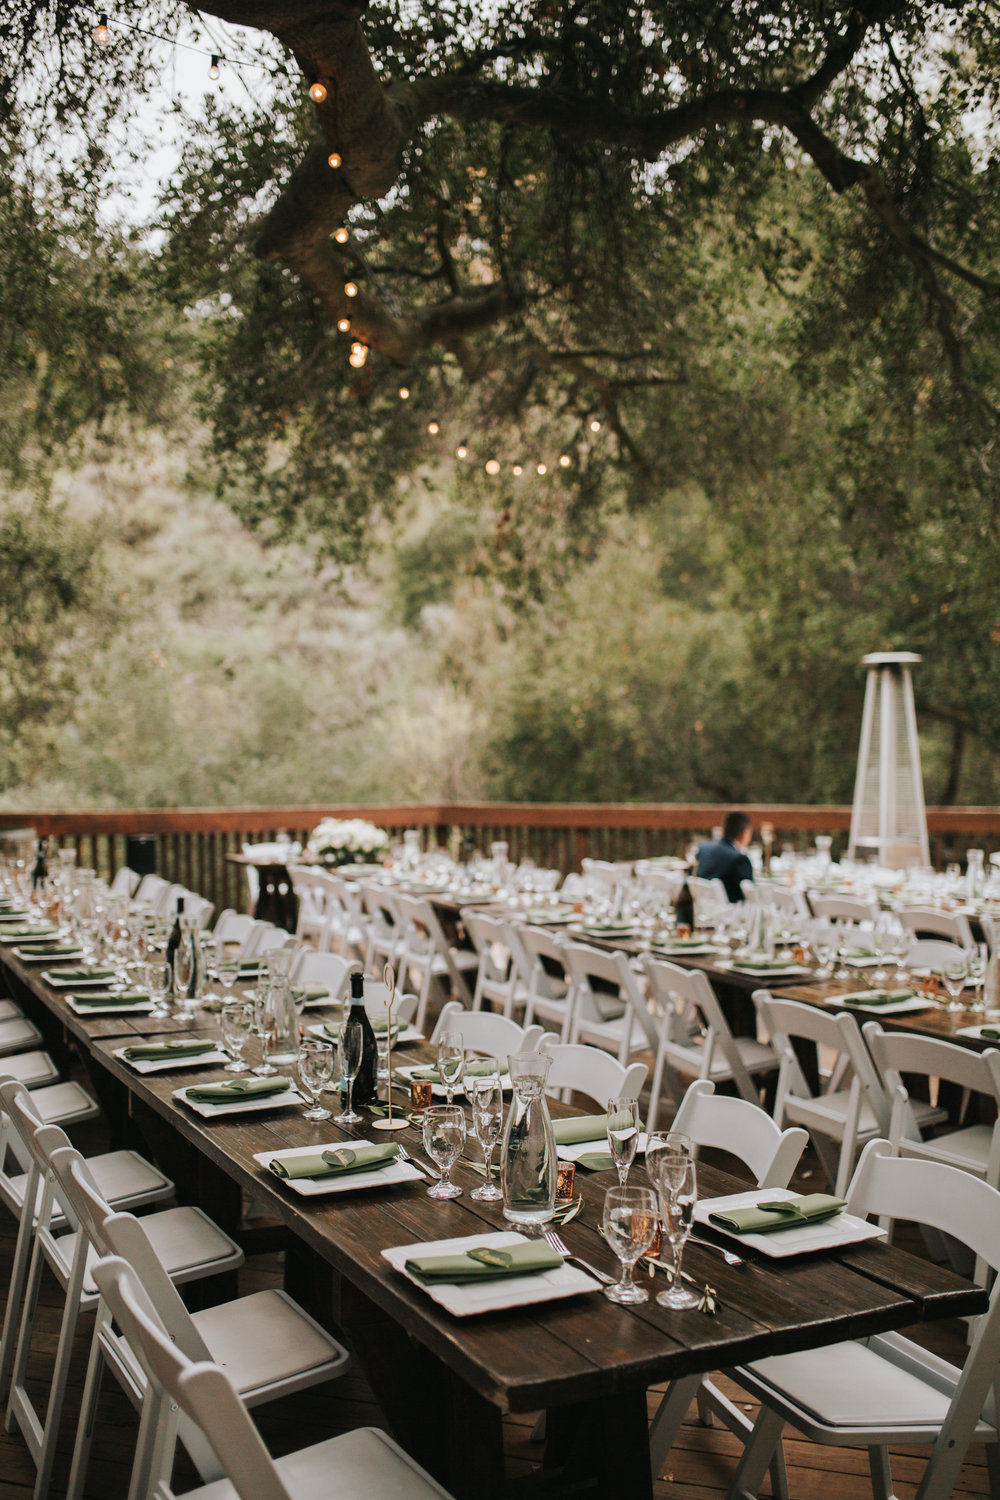 The 1909, The 1909 Wedding, Topanga Canyon Wedding, wood farm tables wedding, wedding reception farm table, minimalist wedding design, simple olive greenery on tables